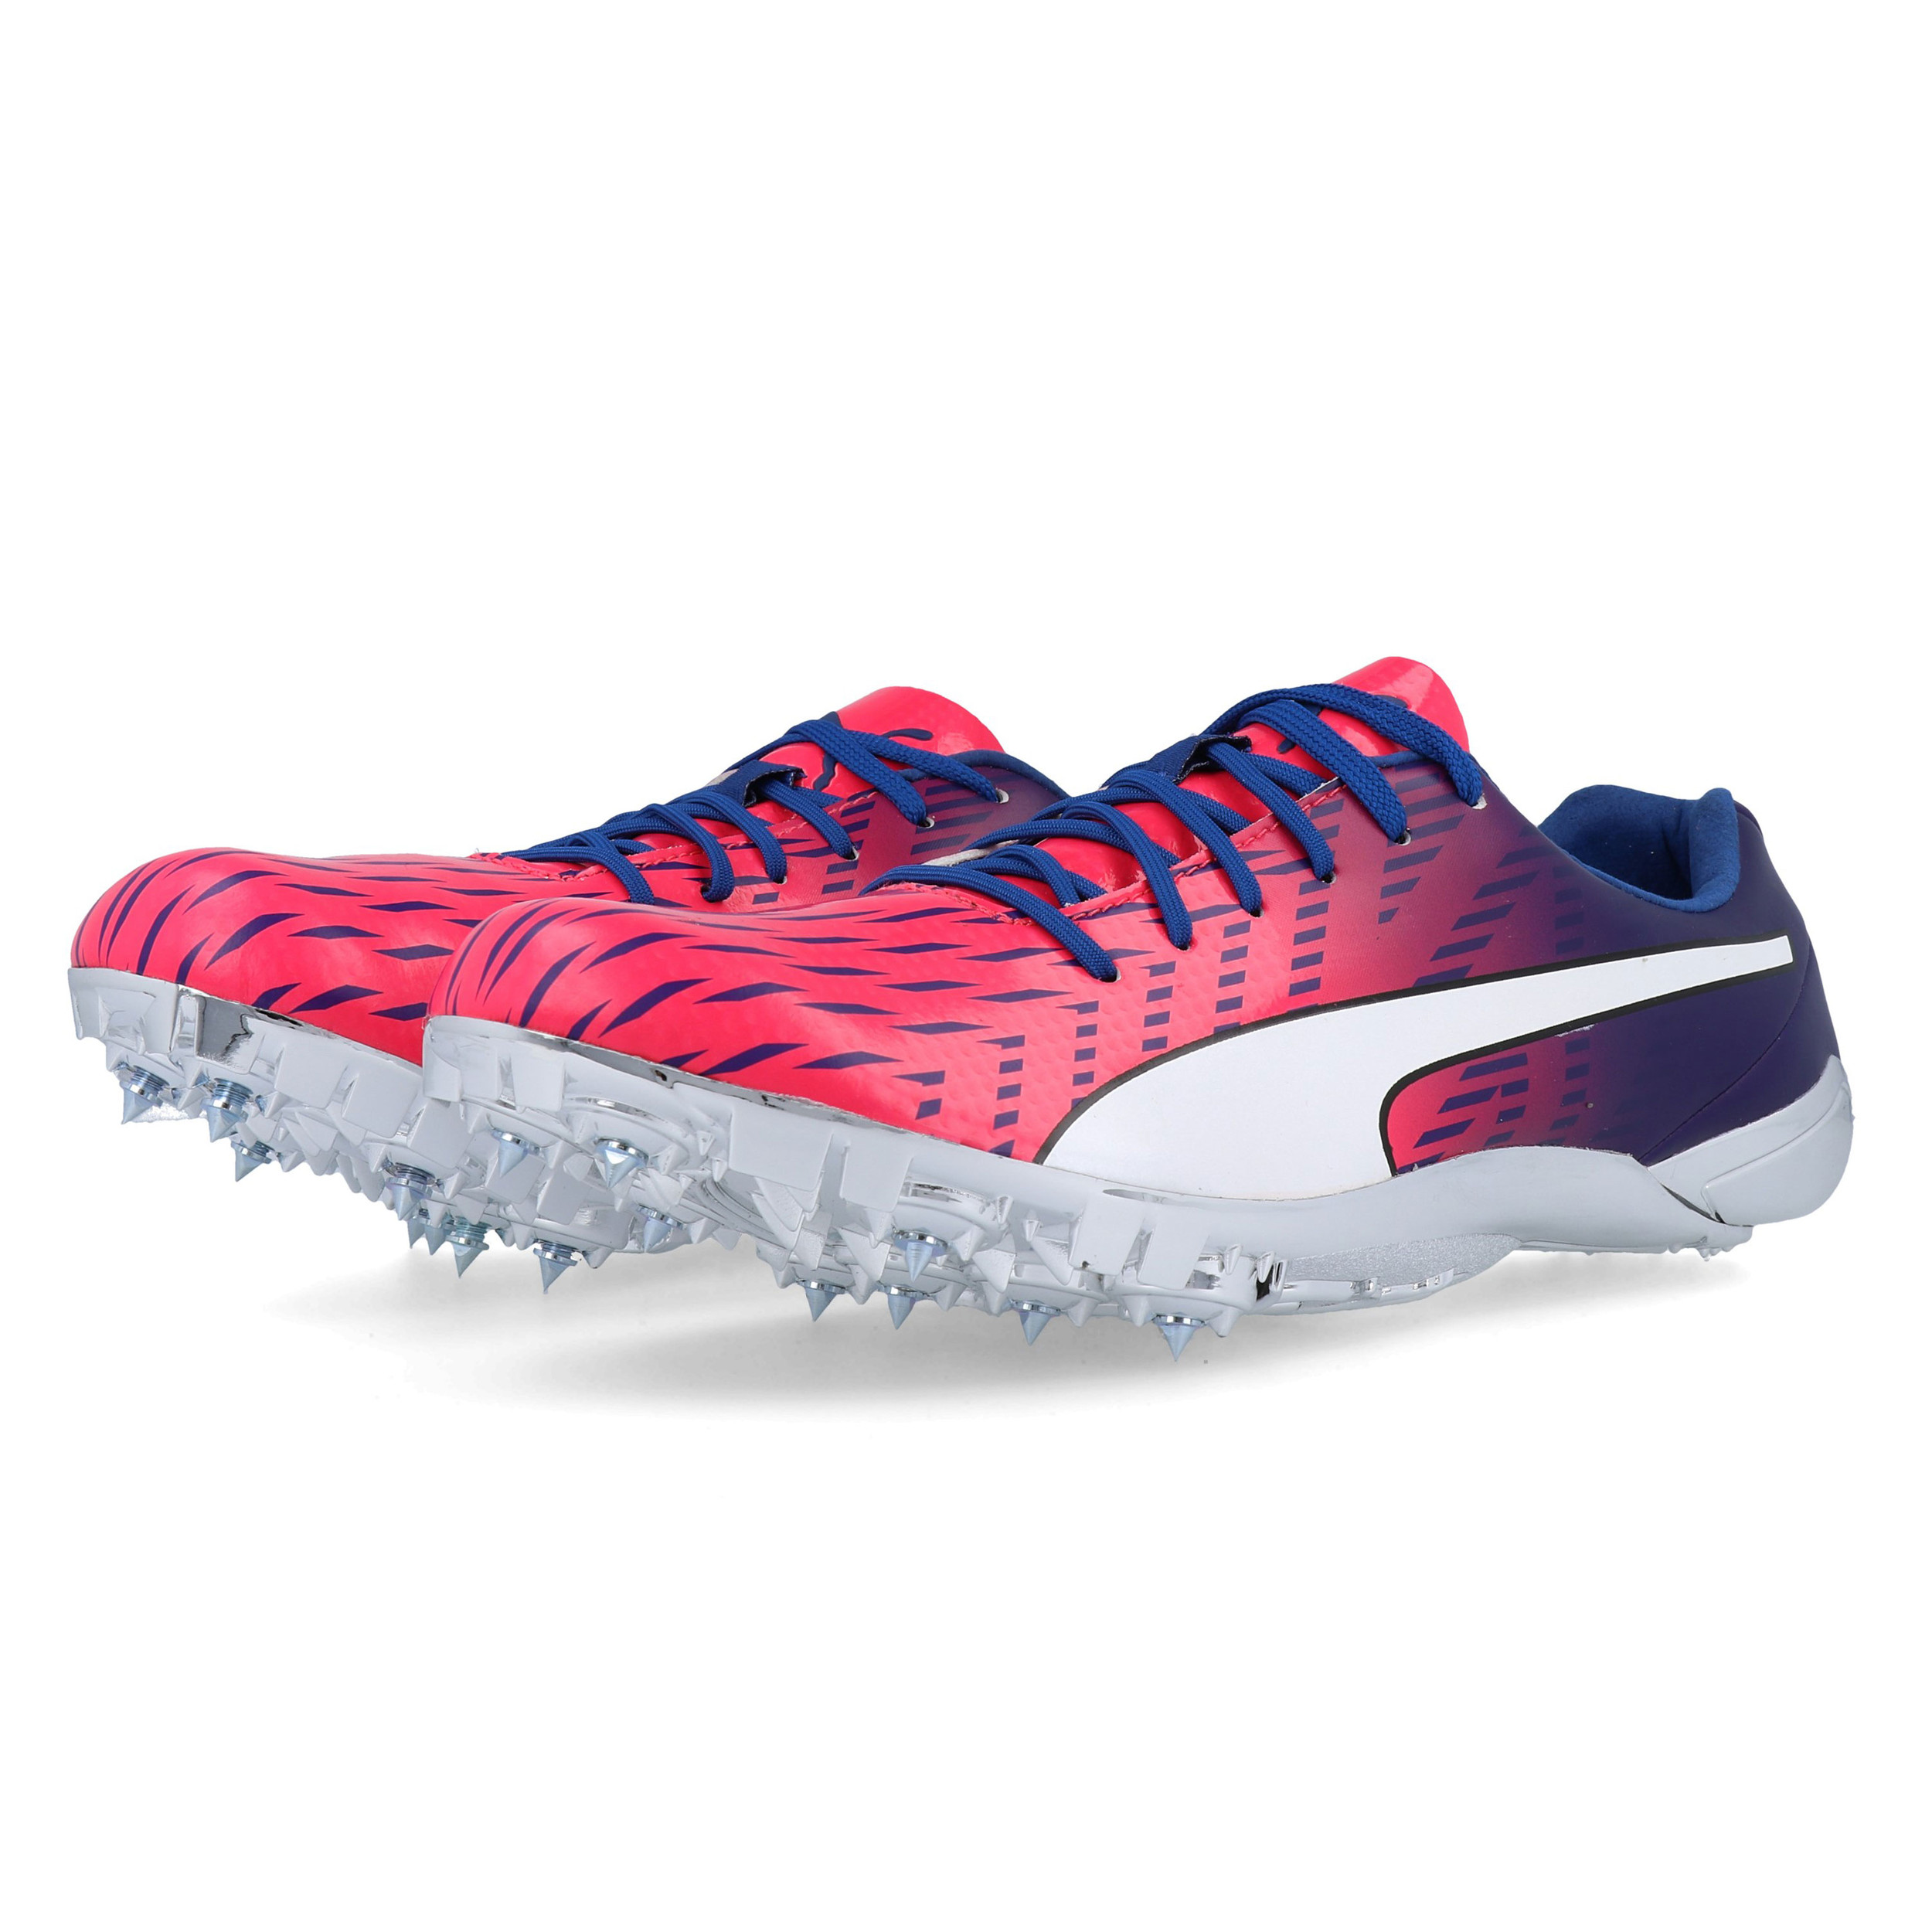 Details about Puma Mens EvoSPEED Electric 5 Running Trainers Sneakers Traction Blue Pink